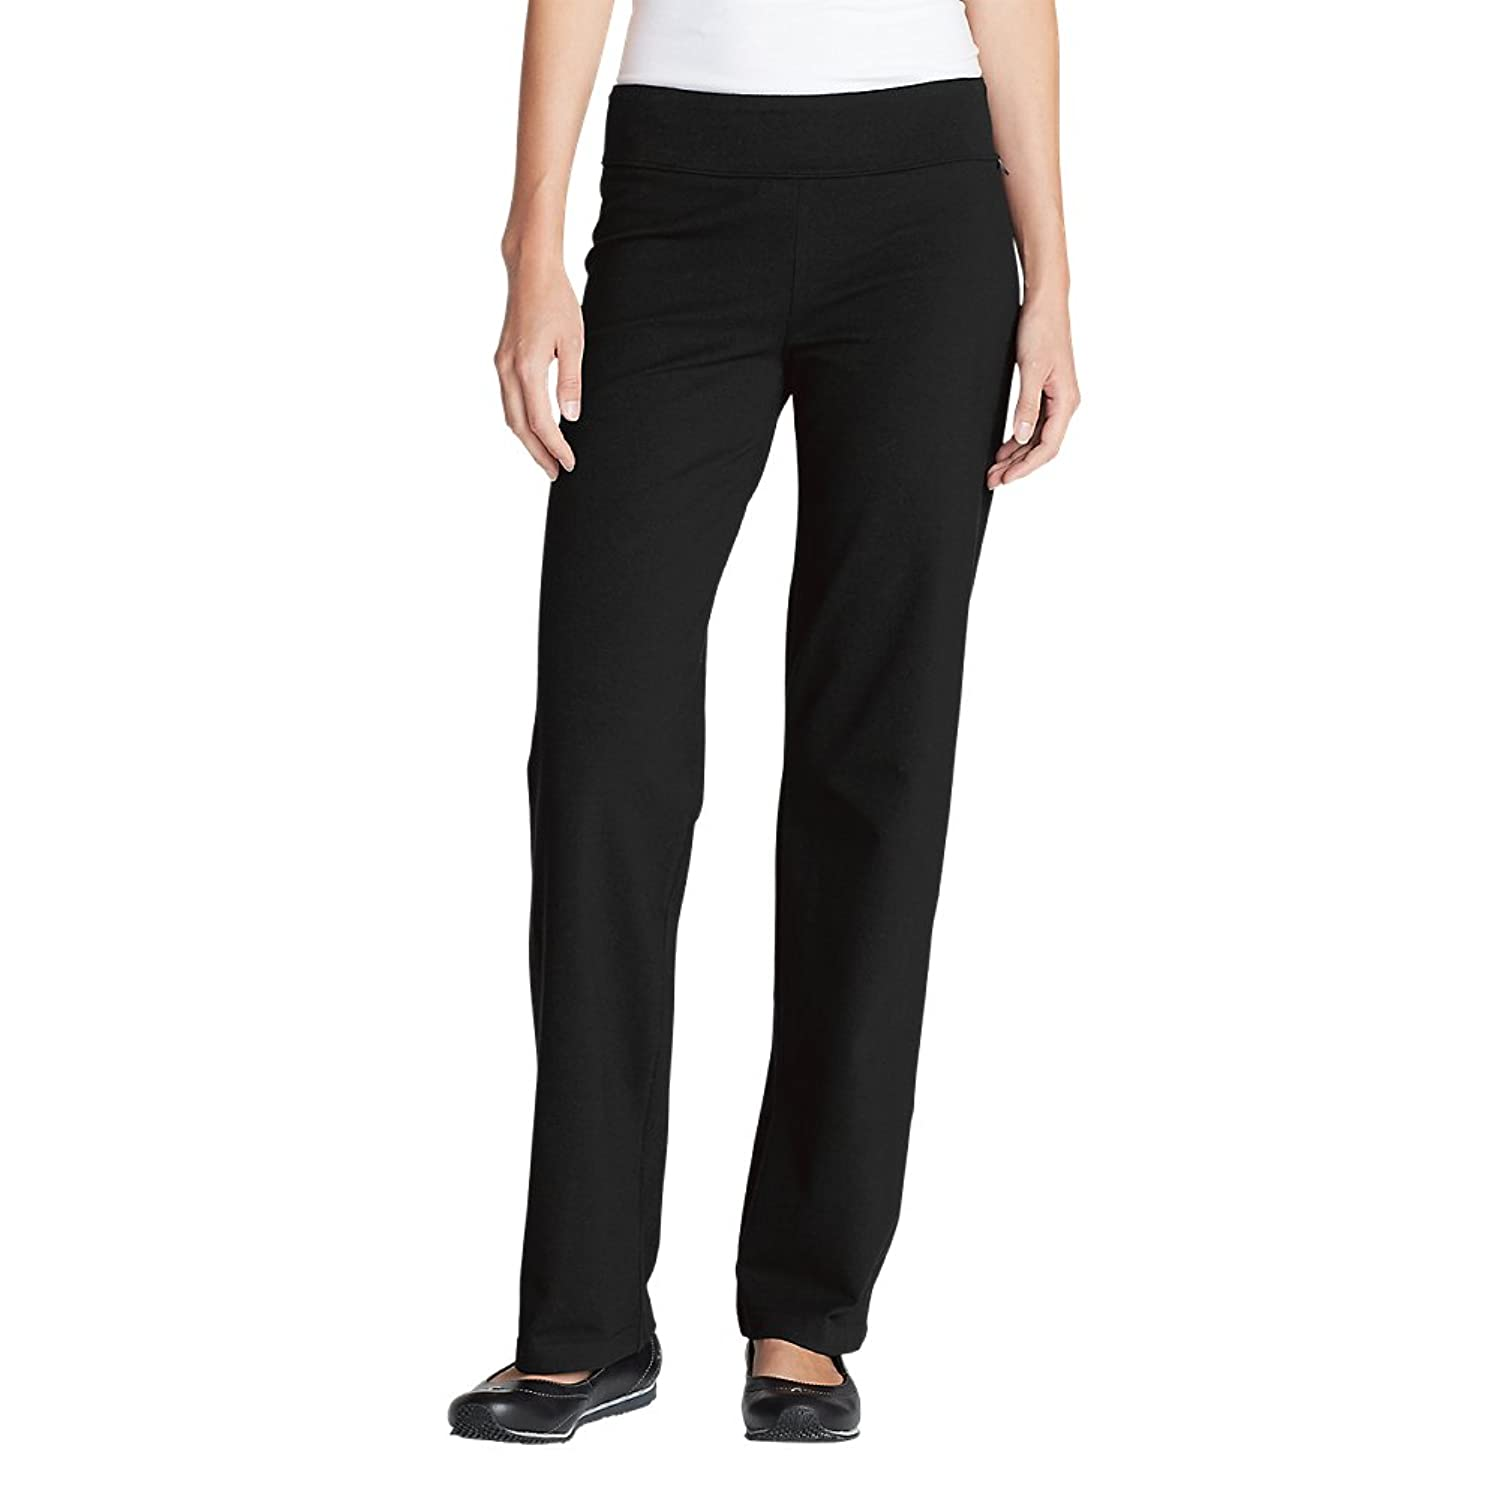 Eddie Bauer Women's NEW Girl On The Go Knit Pants